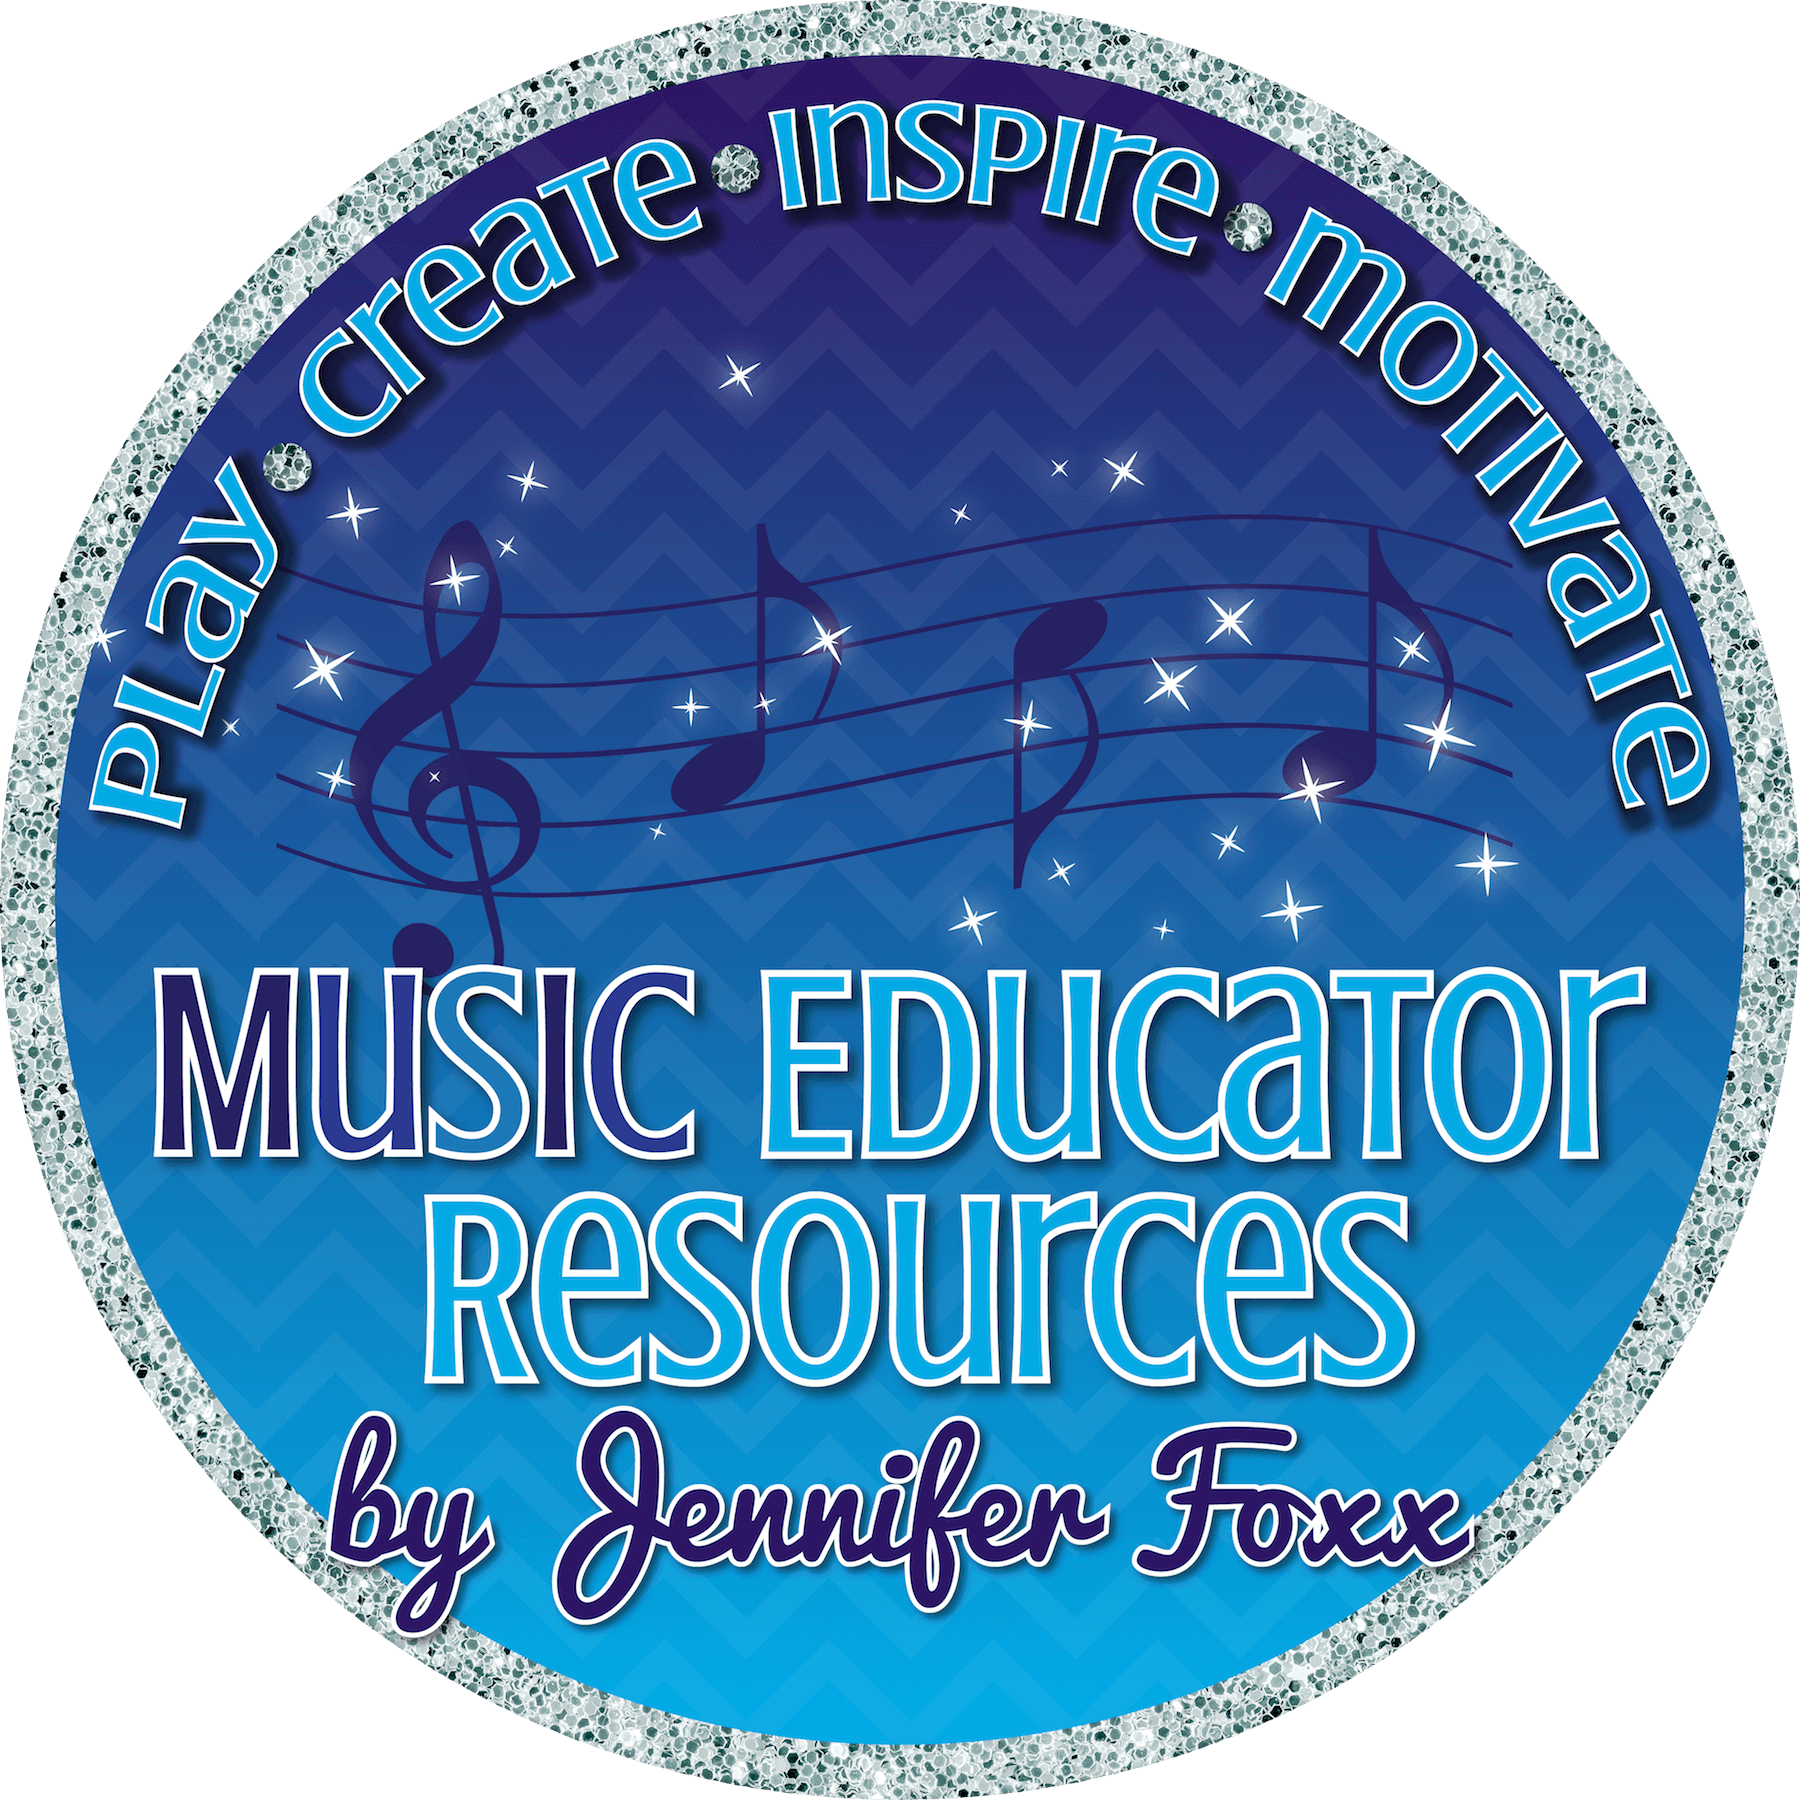 Music Educator